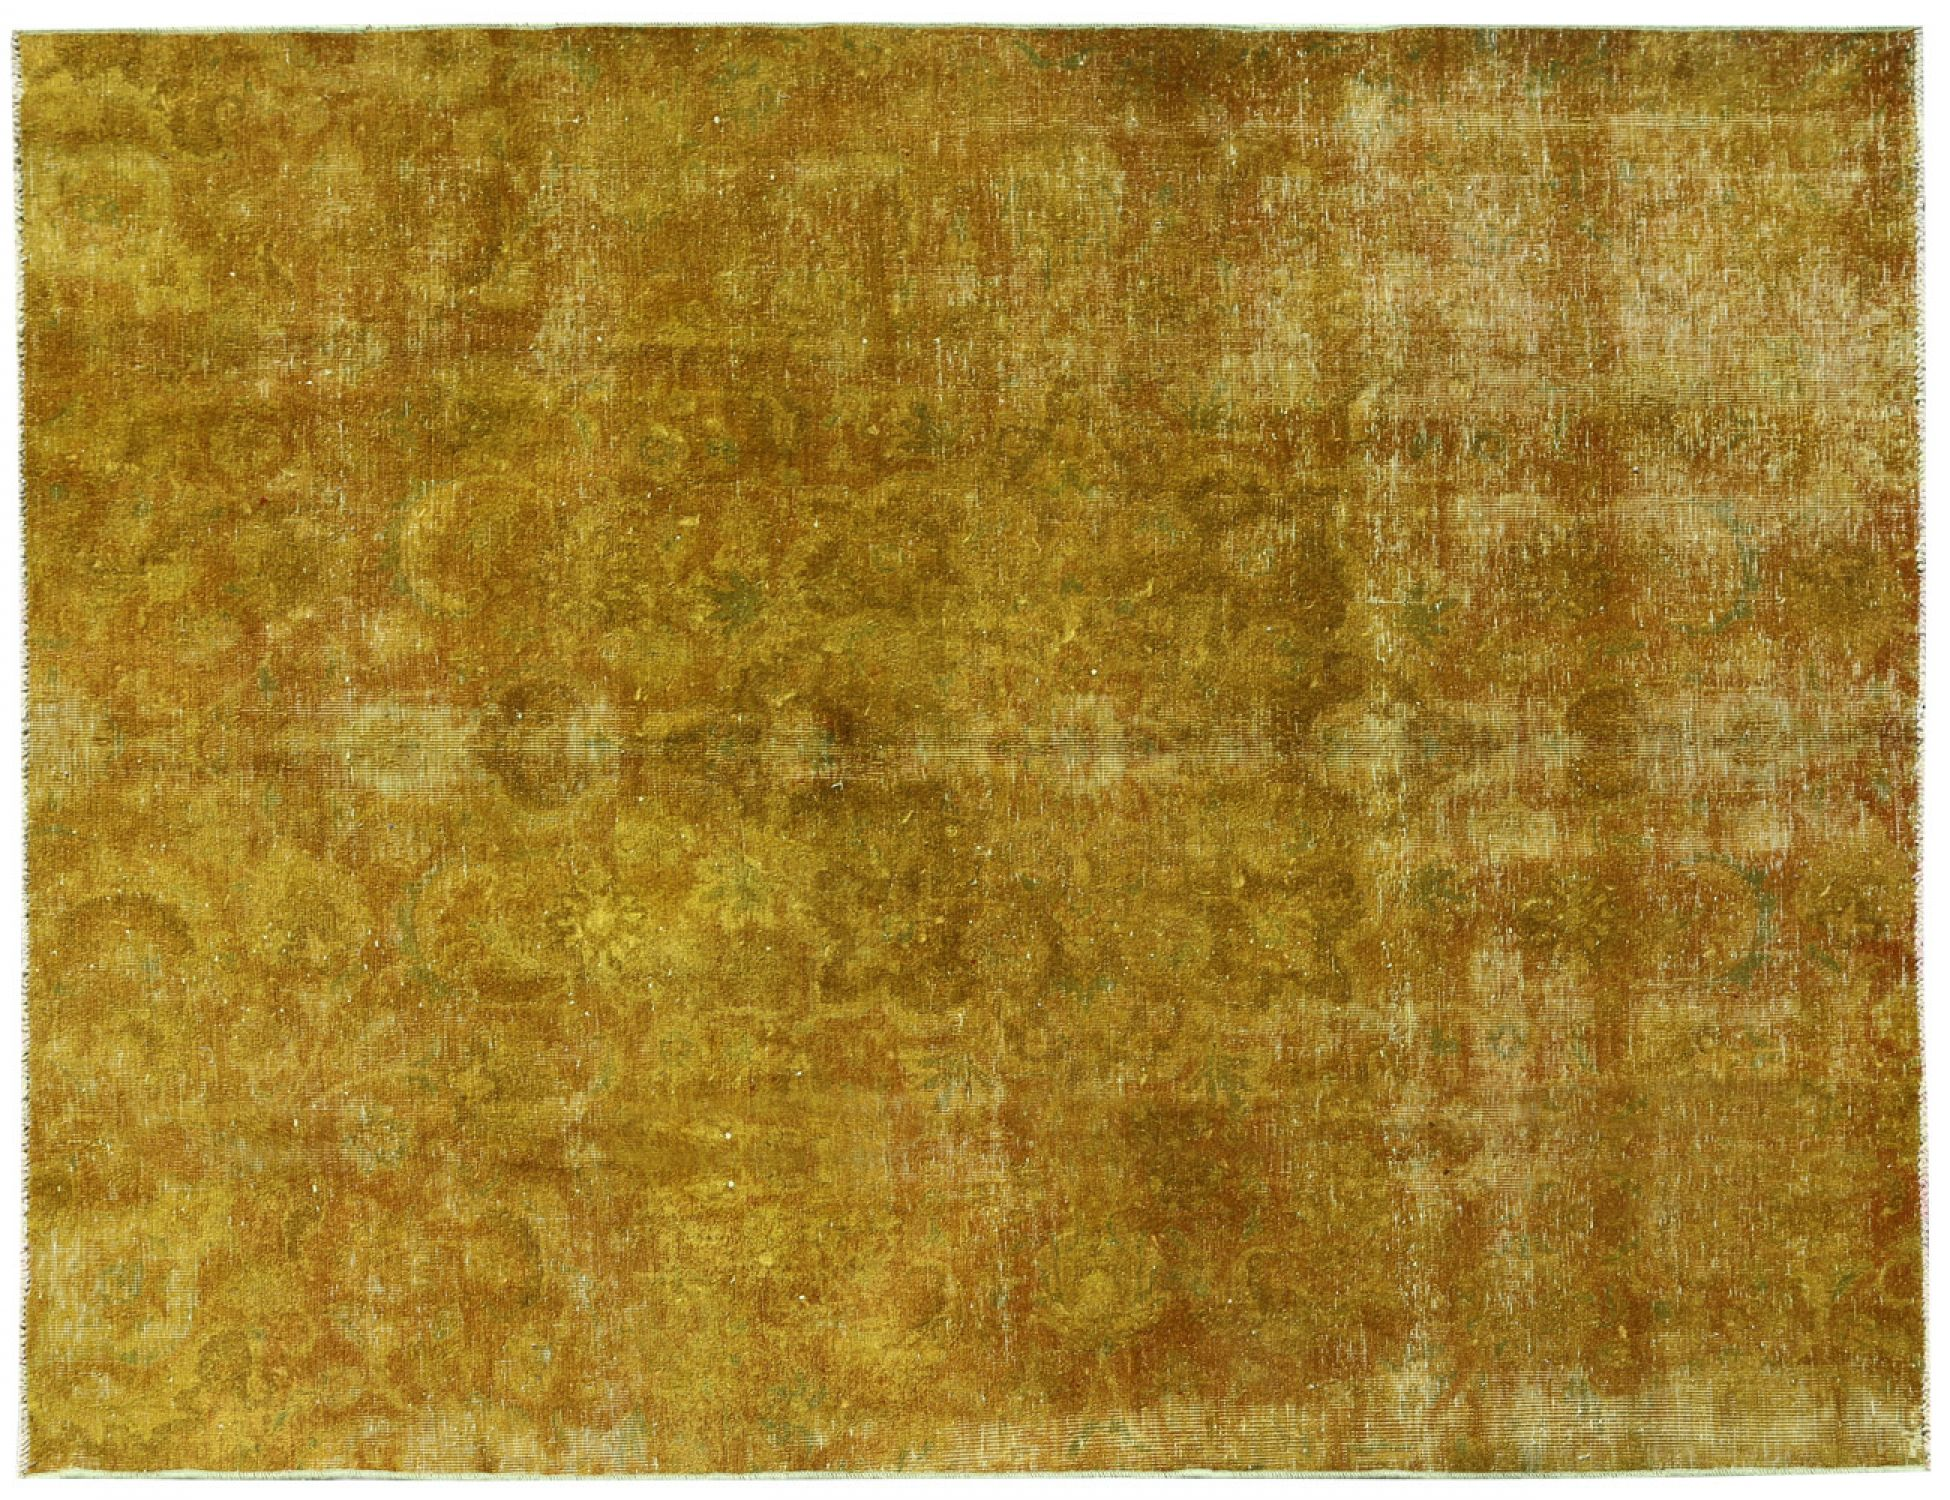 Vintage Carpet  yellow <br/>253 x 198 cm